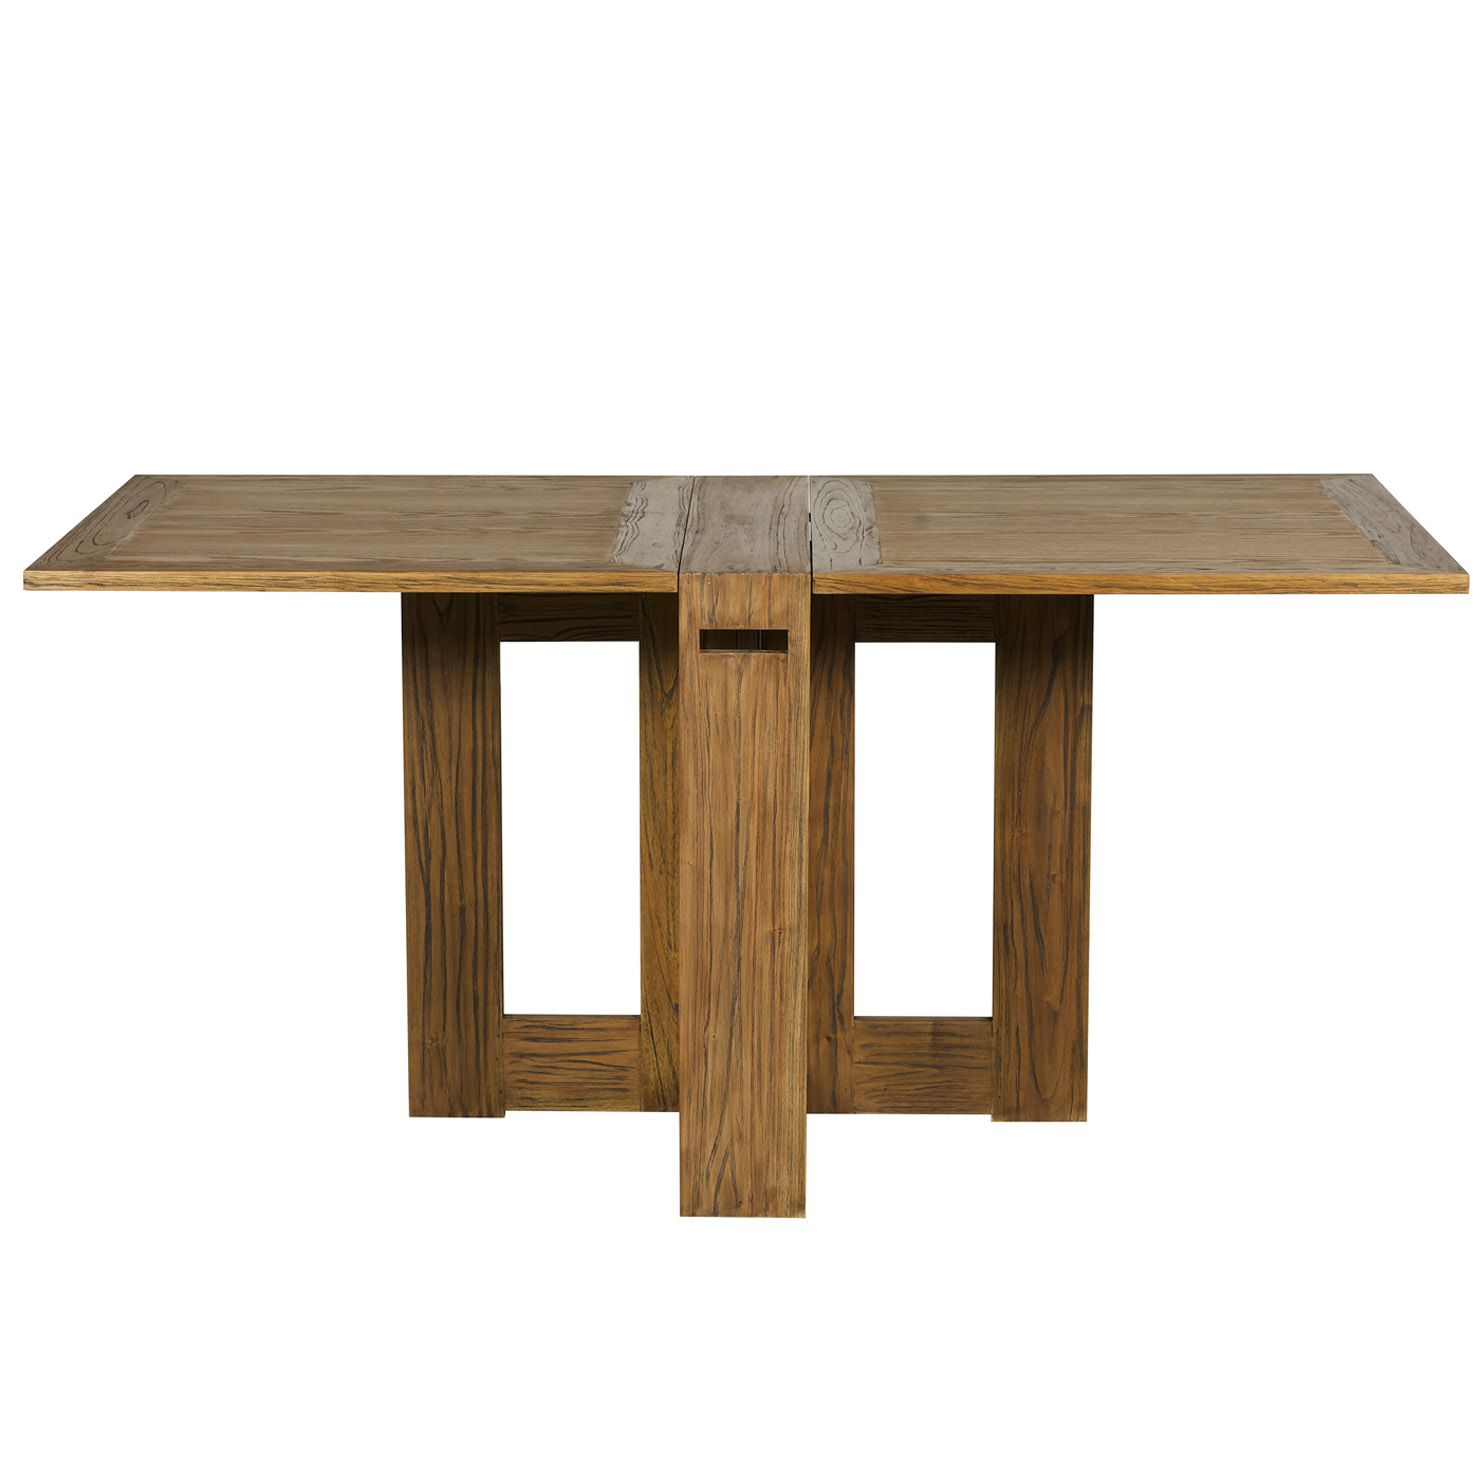 Siwua Square Folding Dining Table